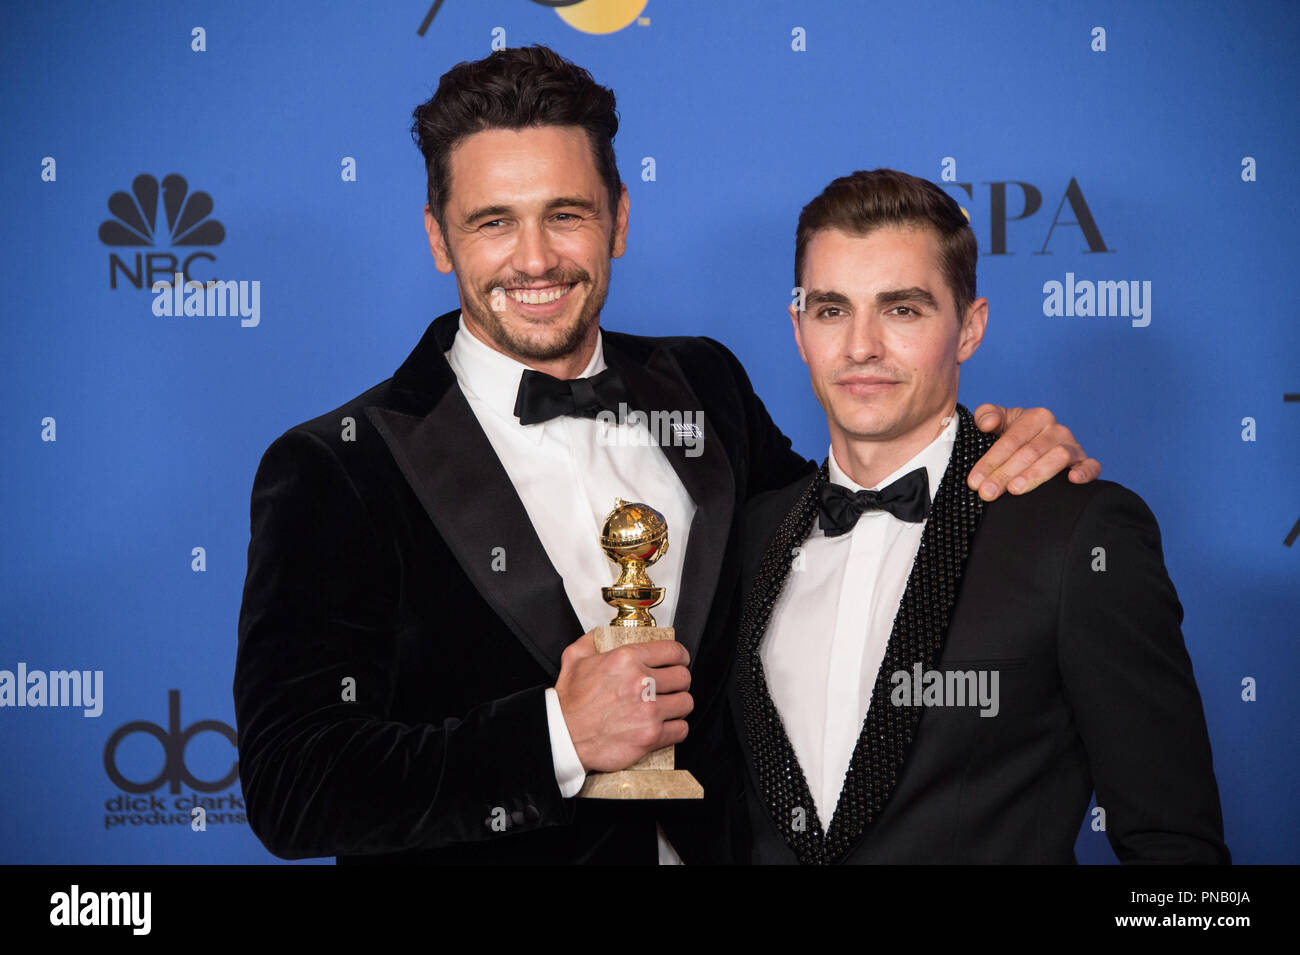 """After winning the category of BEST PERFORMANCE BY AN ACTOR IN A MOTION PICTURE – COMEDY OR MUSICAL for his work in """"The Disaster Artist,"""" actor James Franco poses backstagewith Dave Franco in the press room with his Golden Globe Award at the 75th Annual Golden Globe Awards at the Beverly Hilton in Beverly Hills, CA on Sunday, January 7, 2018. Stock Photo"""